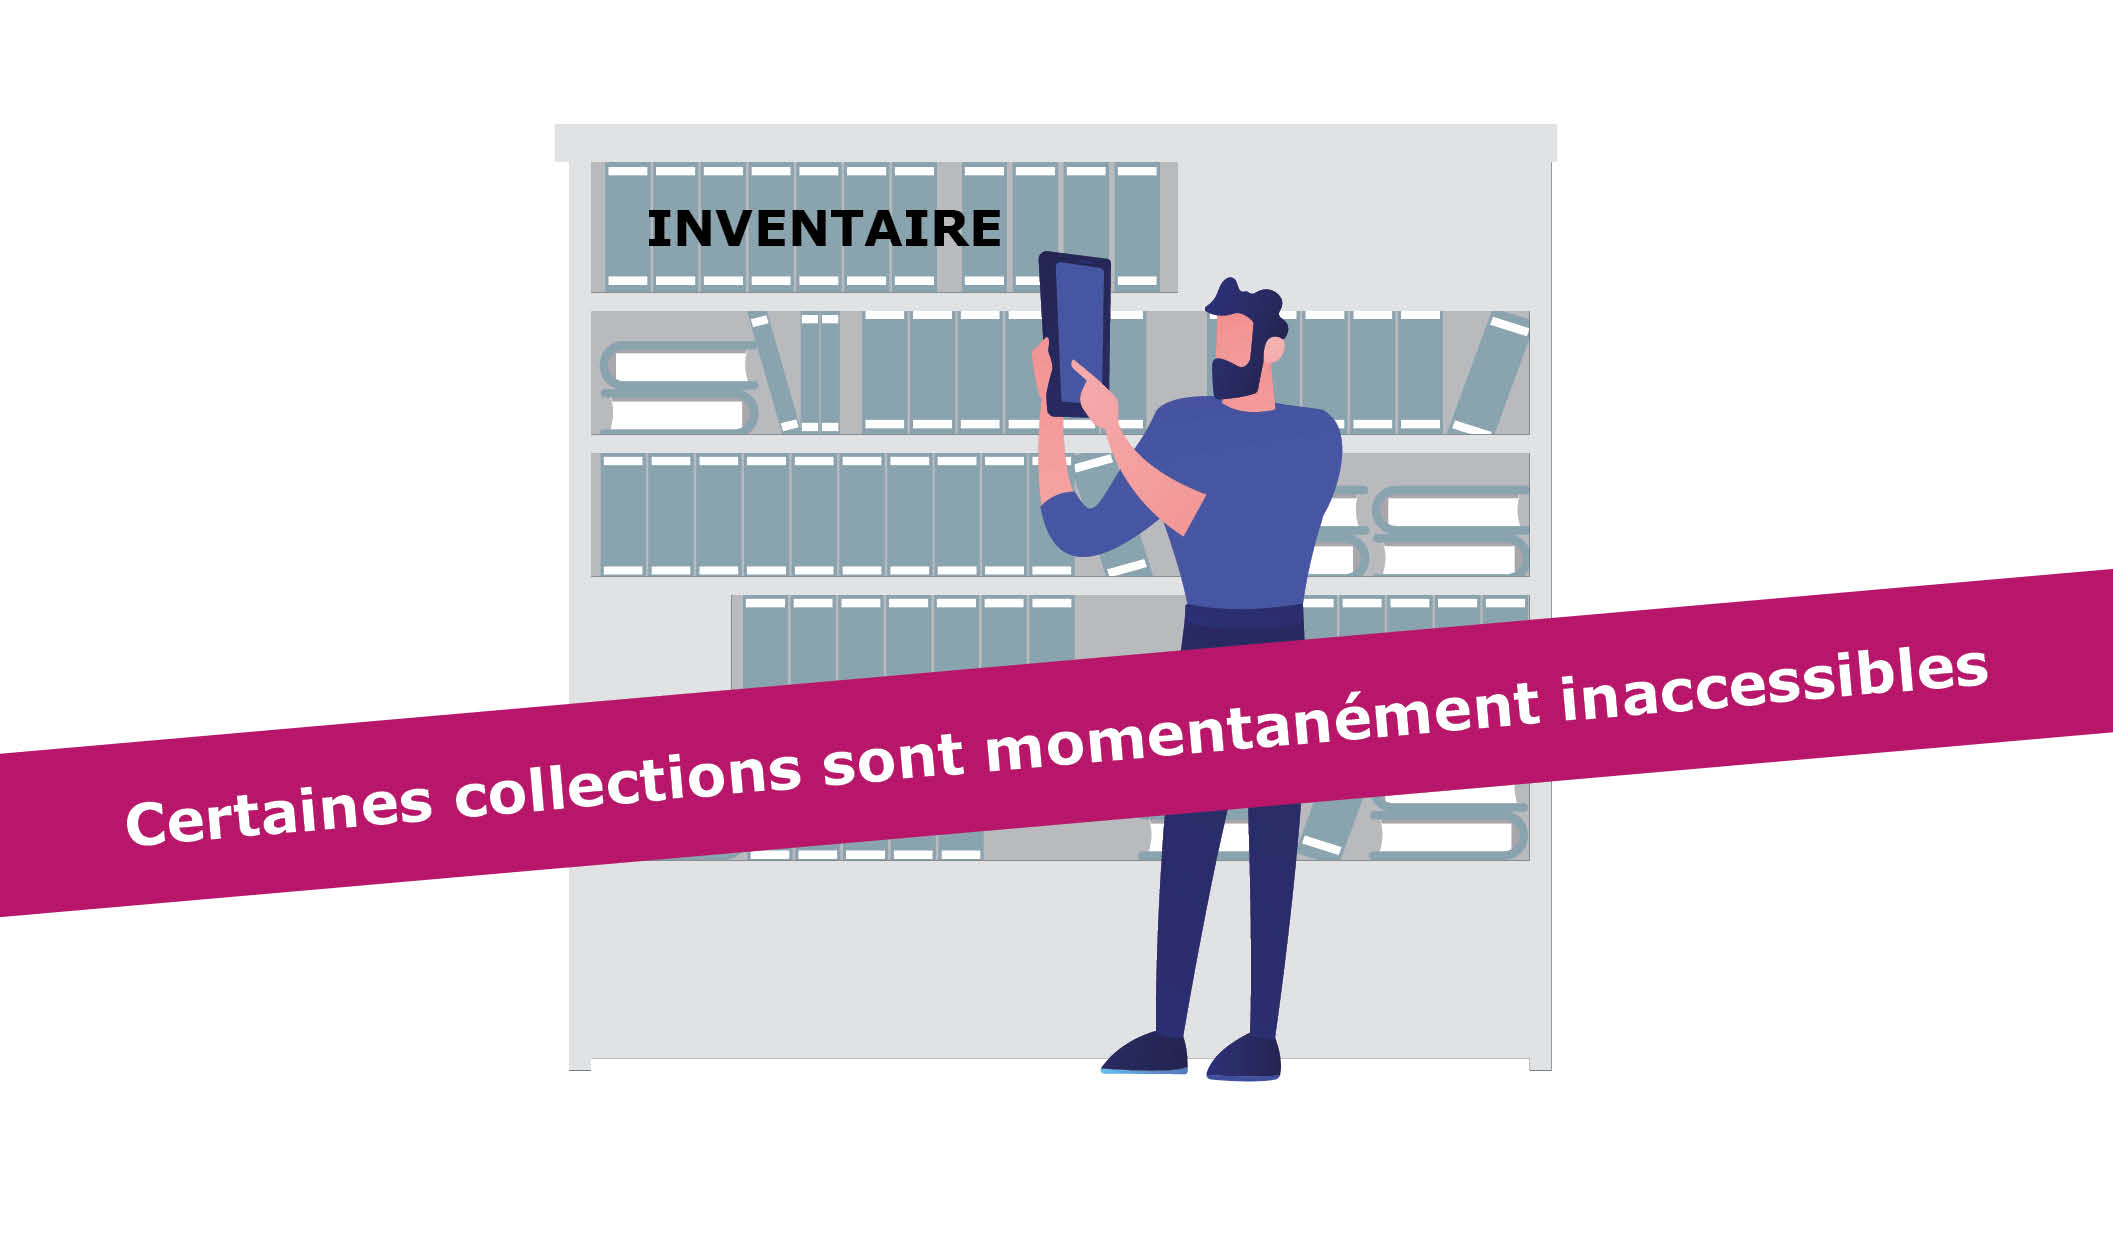 Certaines collections momentanément inaccessibles pour cause d'inventaire